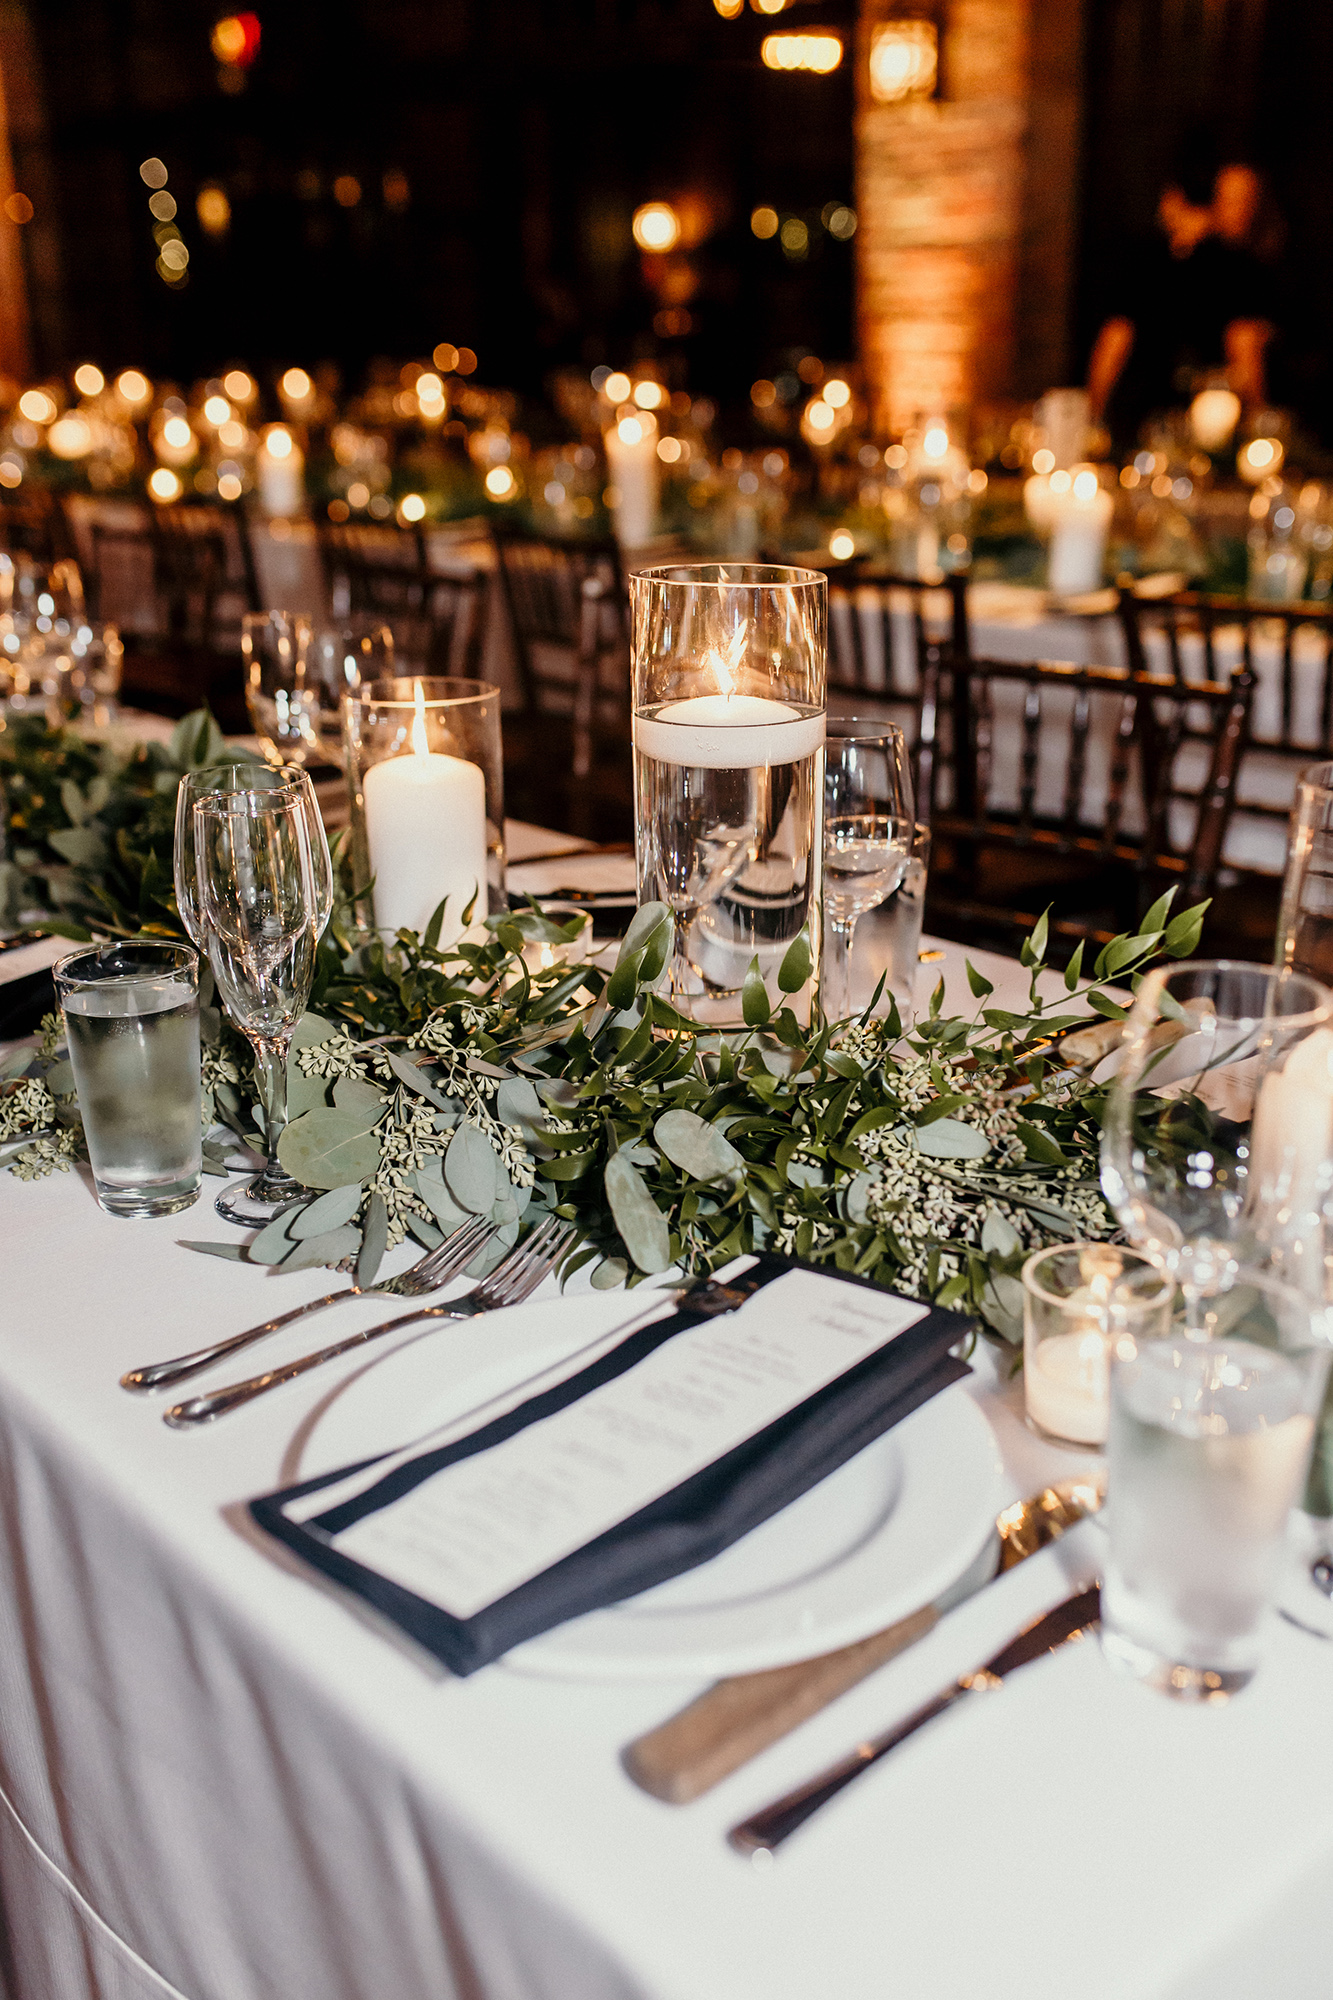 Winter Wedding Candle Centerpiece Ideas You Can Make At Home | by Bride &  Blossom, NYC's Only Luxury Wedding Florist -- Wedding Ideas, Tips and  Trends for the Modern, Sophisticated Bride